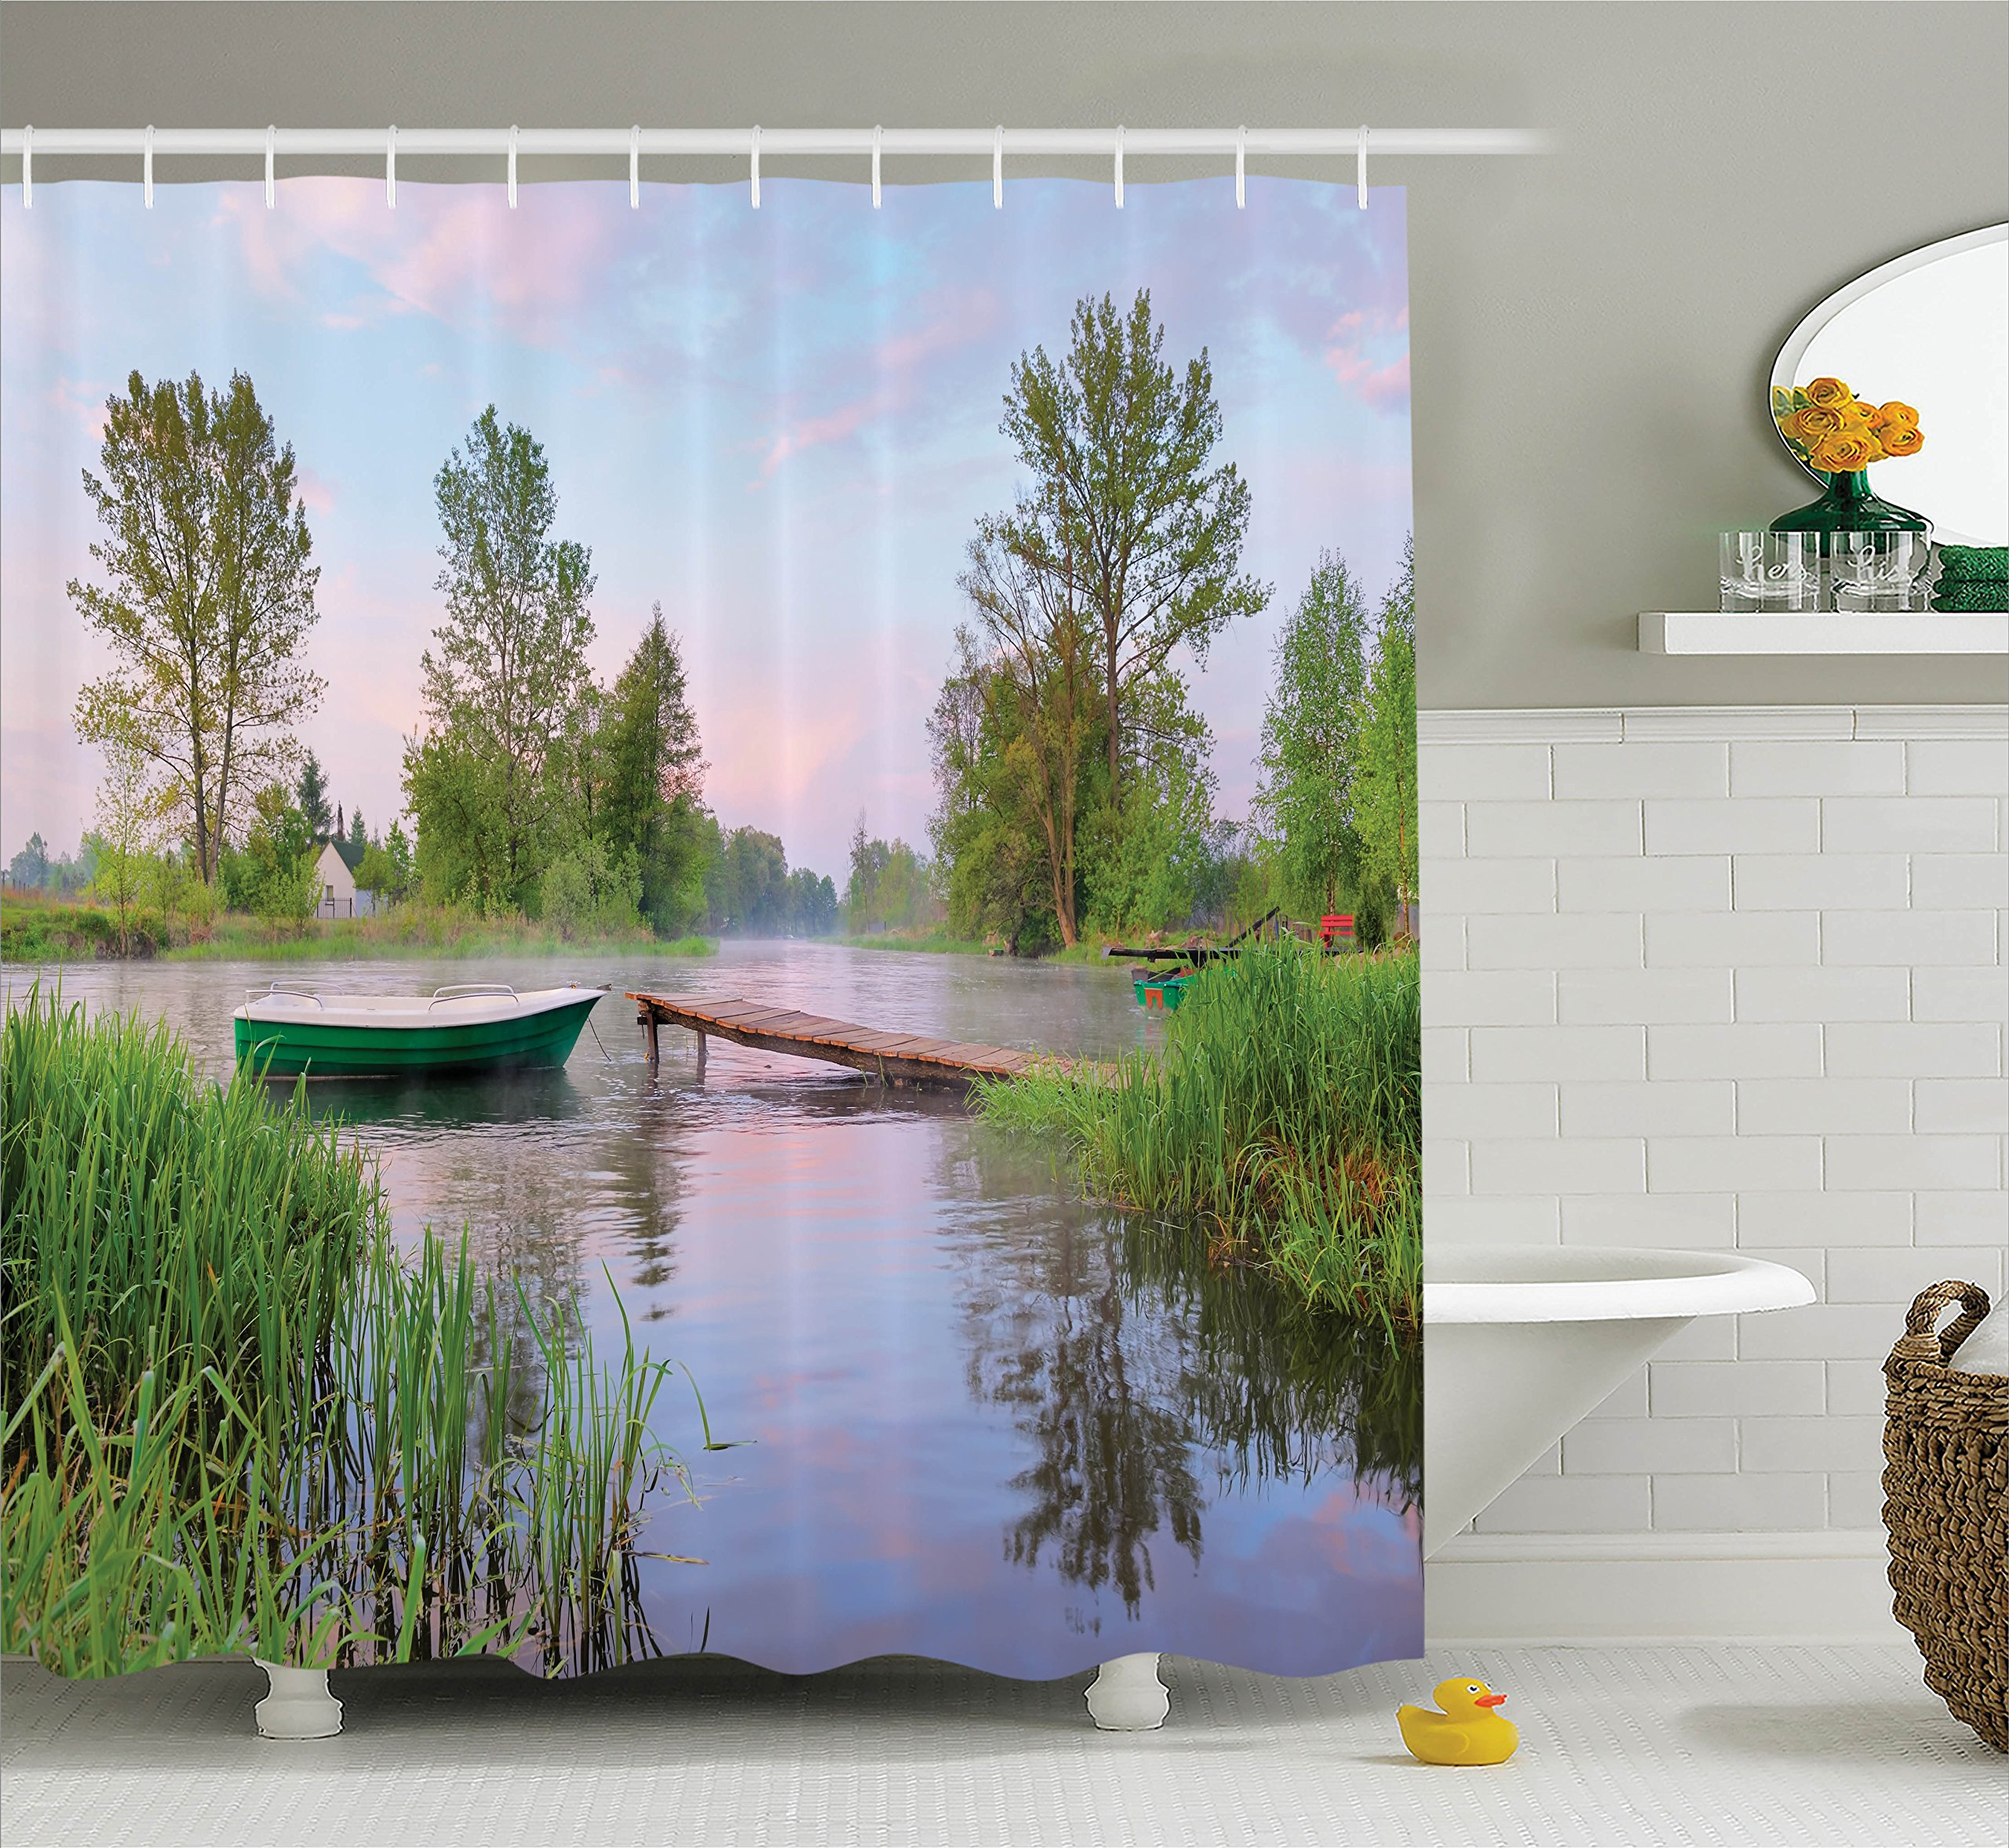 Ambesonne Lake House Decor Collection, Rural Landscape on Lakeside Boat Trees Grass Clouds and Boardwalk Countryside, Polyester Fabric Bathroom Shower Curtain Set with Hooks, Green Blue Brown